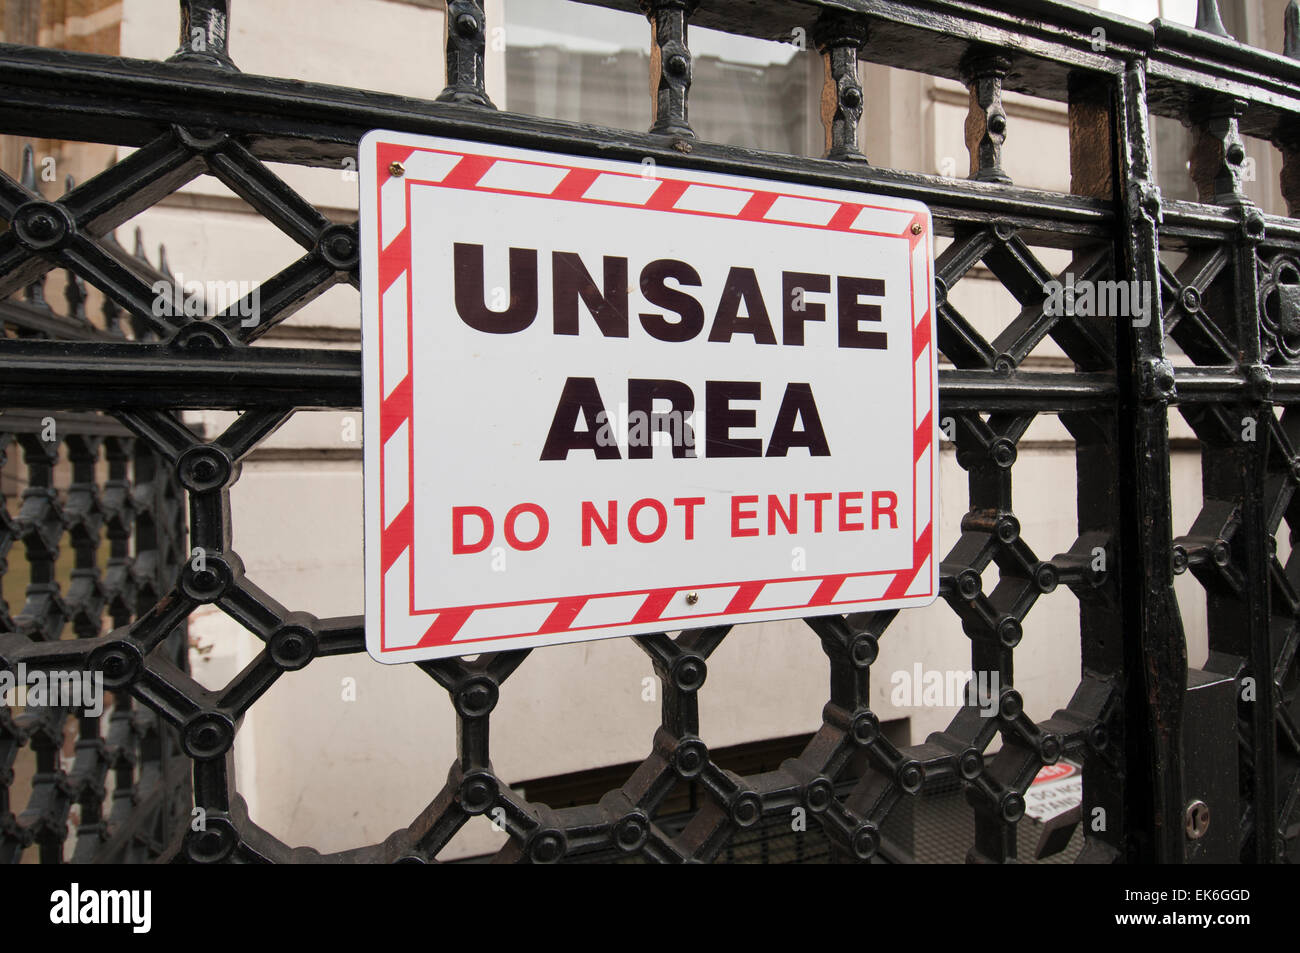 unsafe area, do not enter sign on railings in London UK - Stock Image